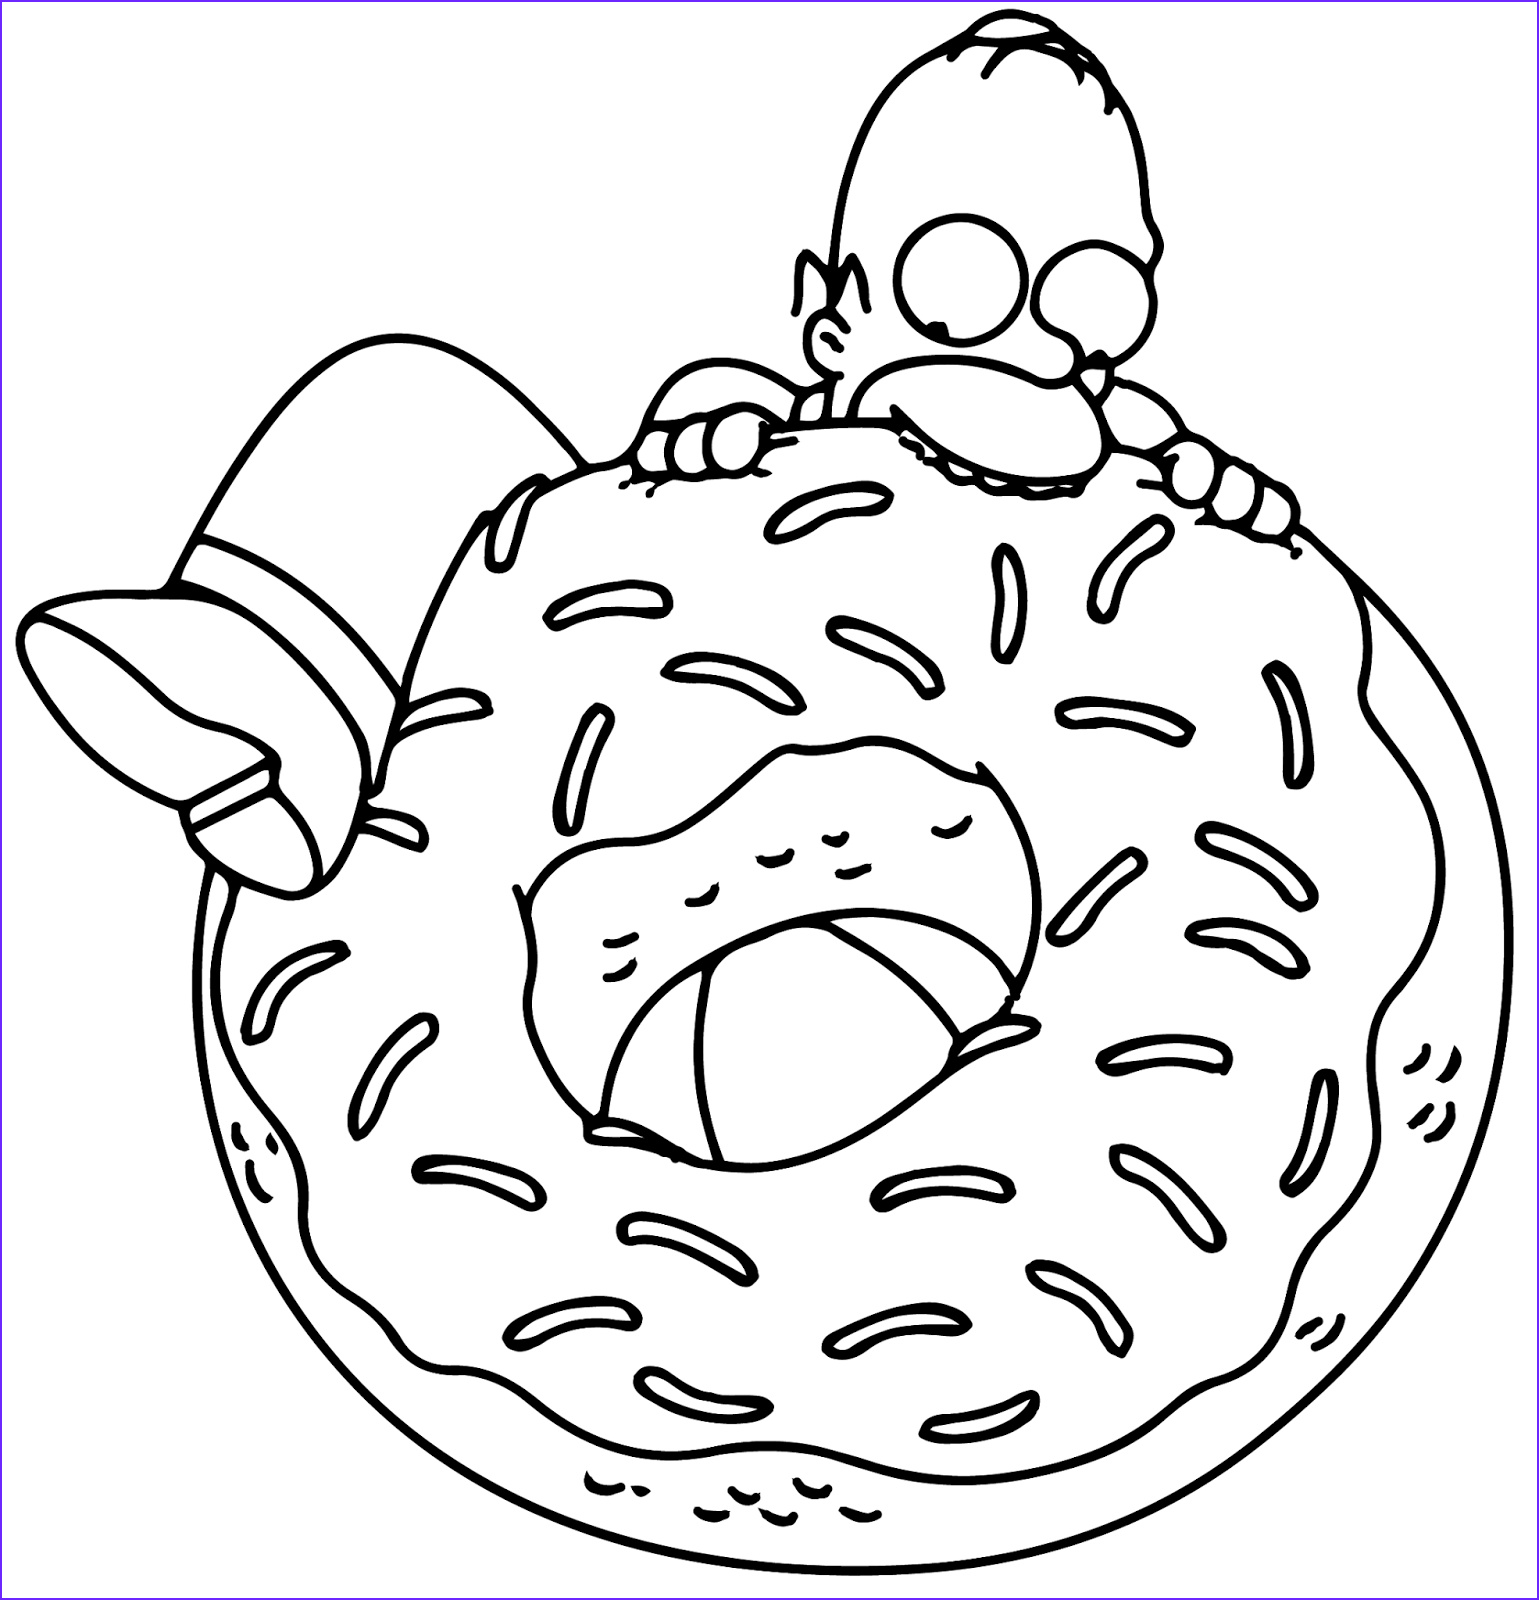 The Simpsons Coloring Page Beautiful Photos Homer Simpson Coloring Page Coloring Home